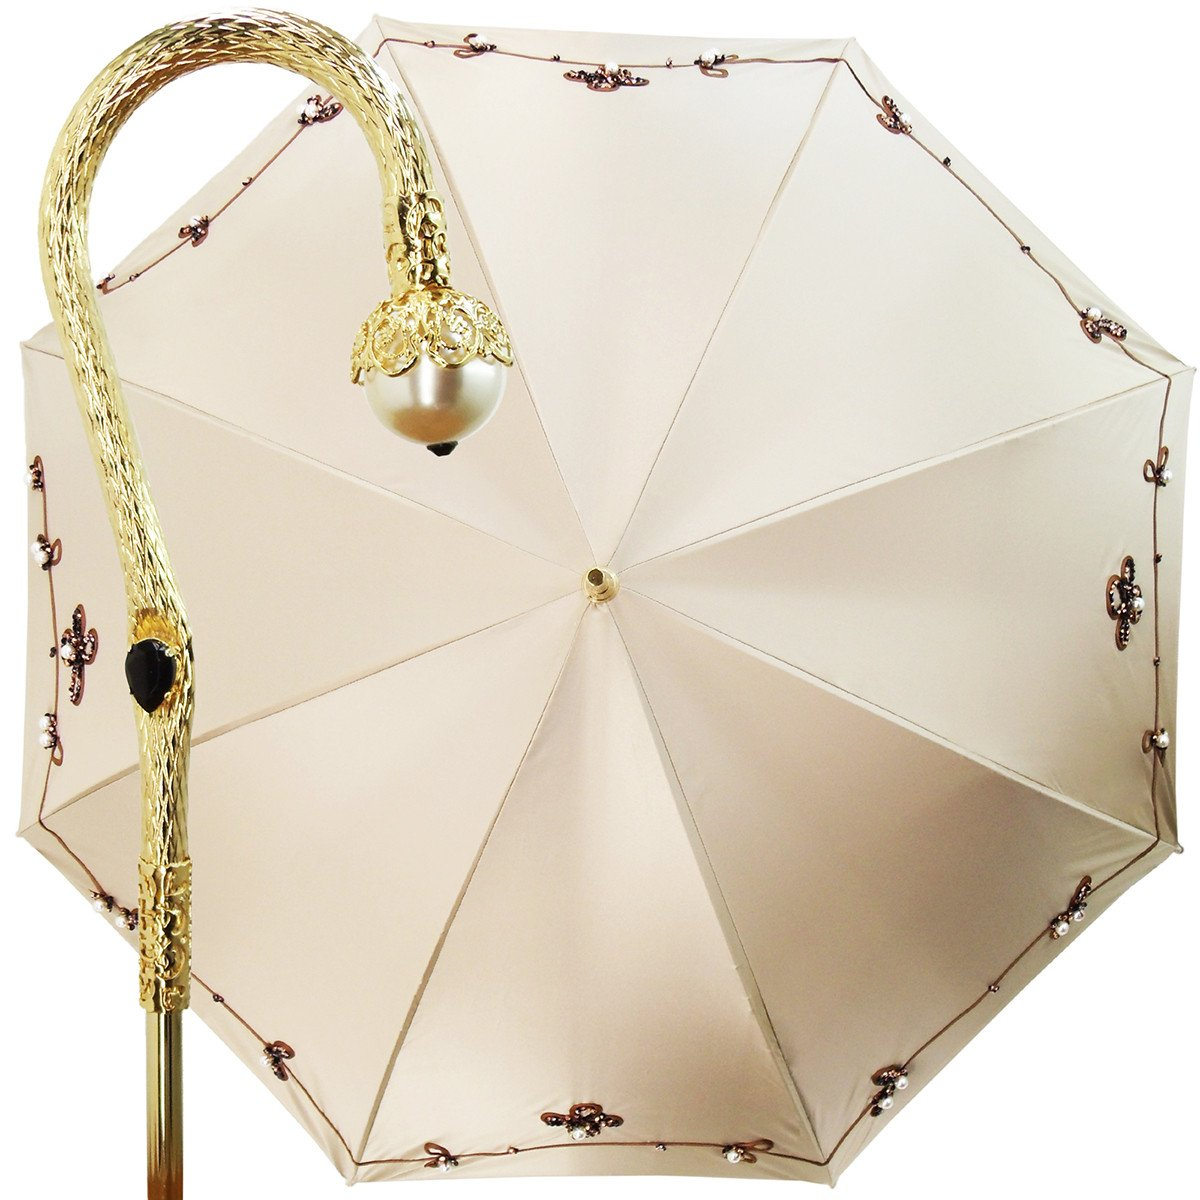 women's double cloth ivory and brown umbrella